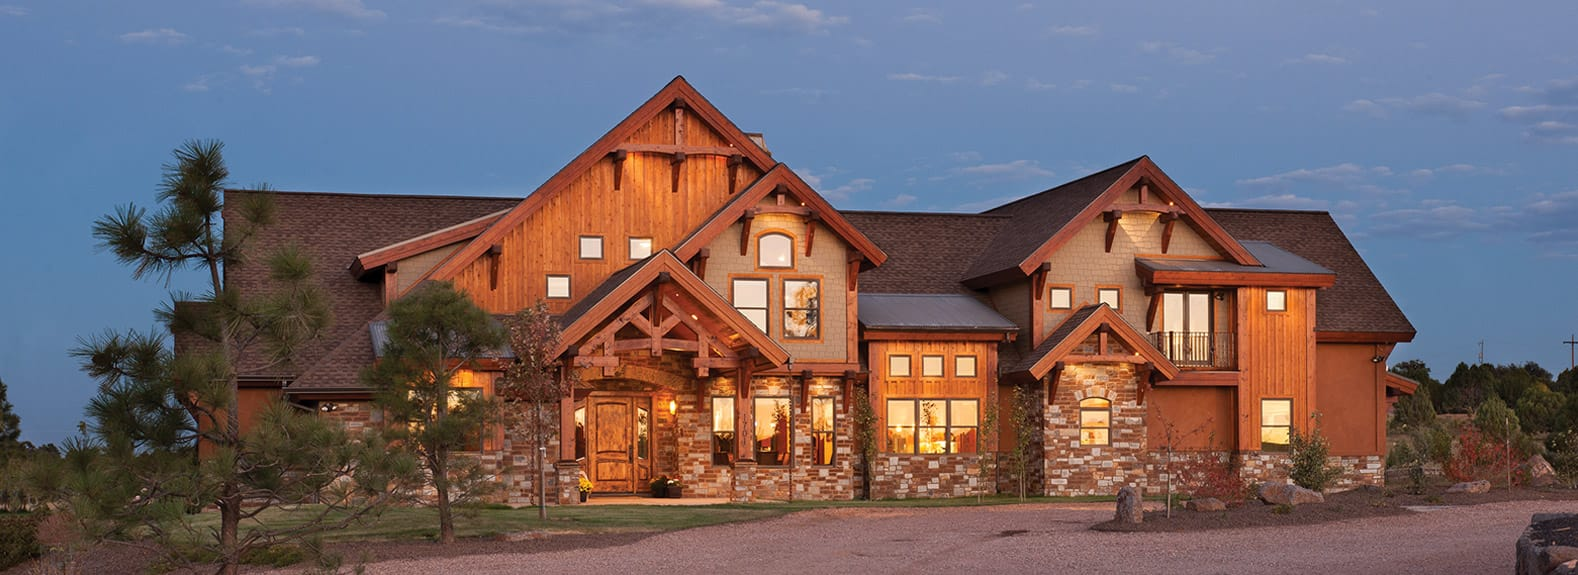 Lovely Mountain Style Homes #3: Timber Frame Homes